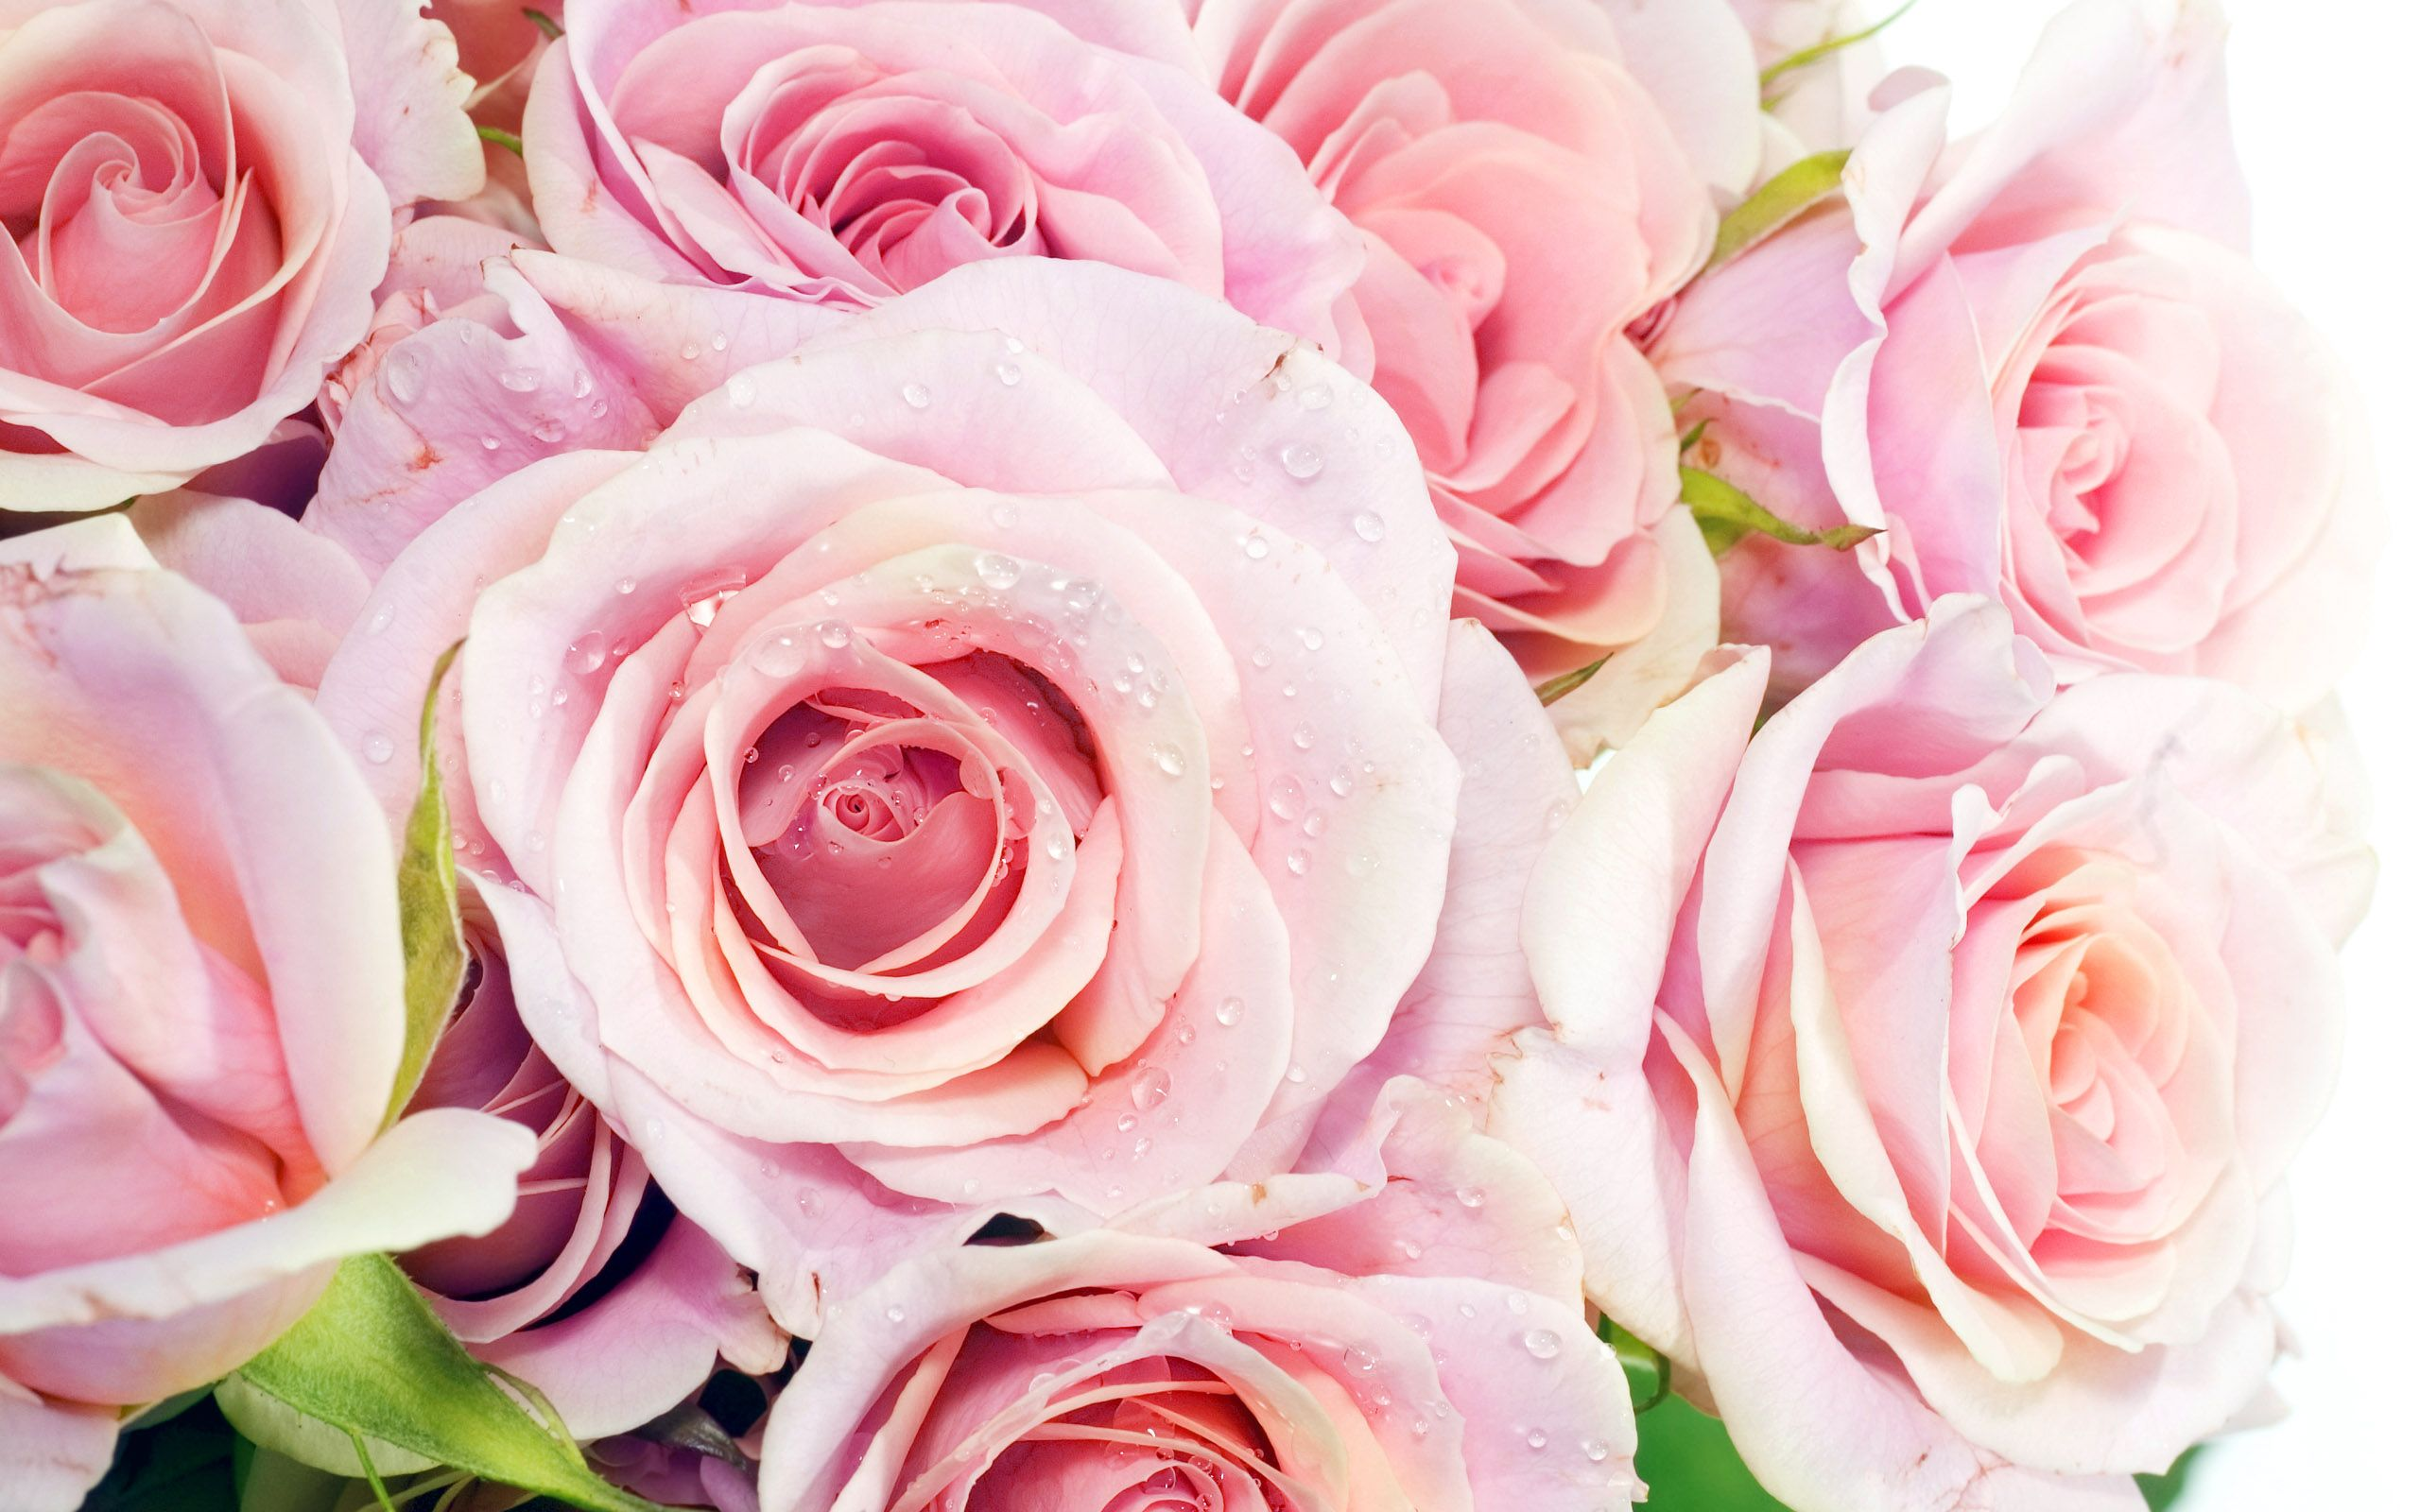 Pink Roses Wallpaper and Background   1366x768   ID:463794